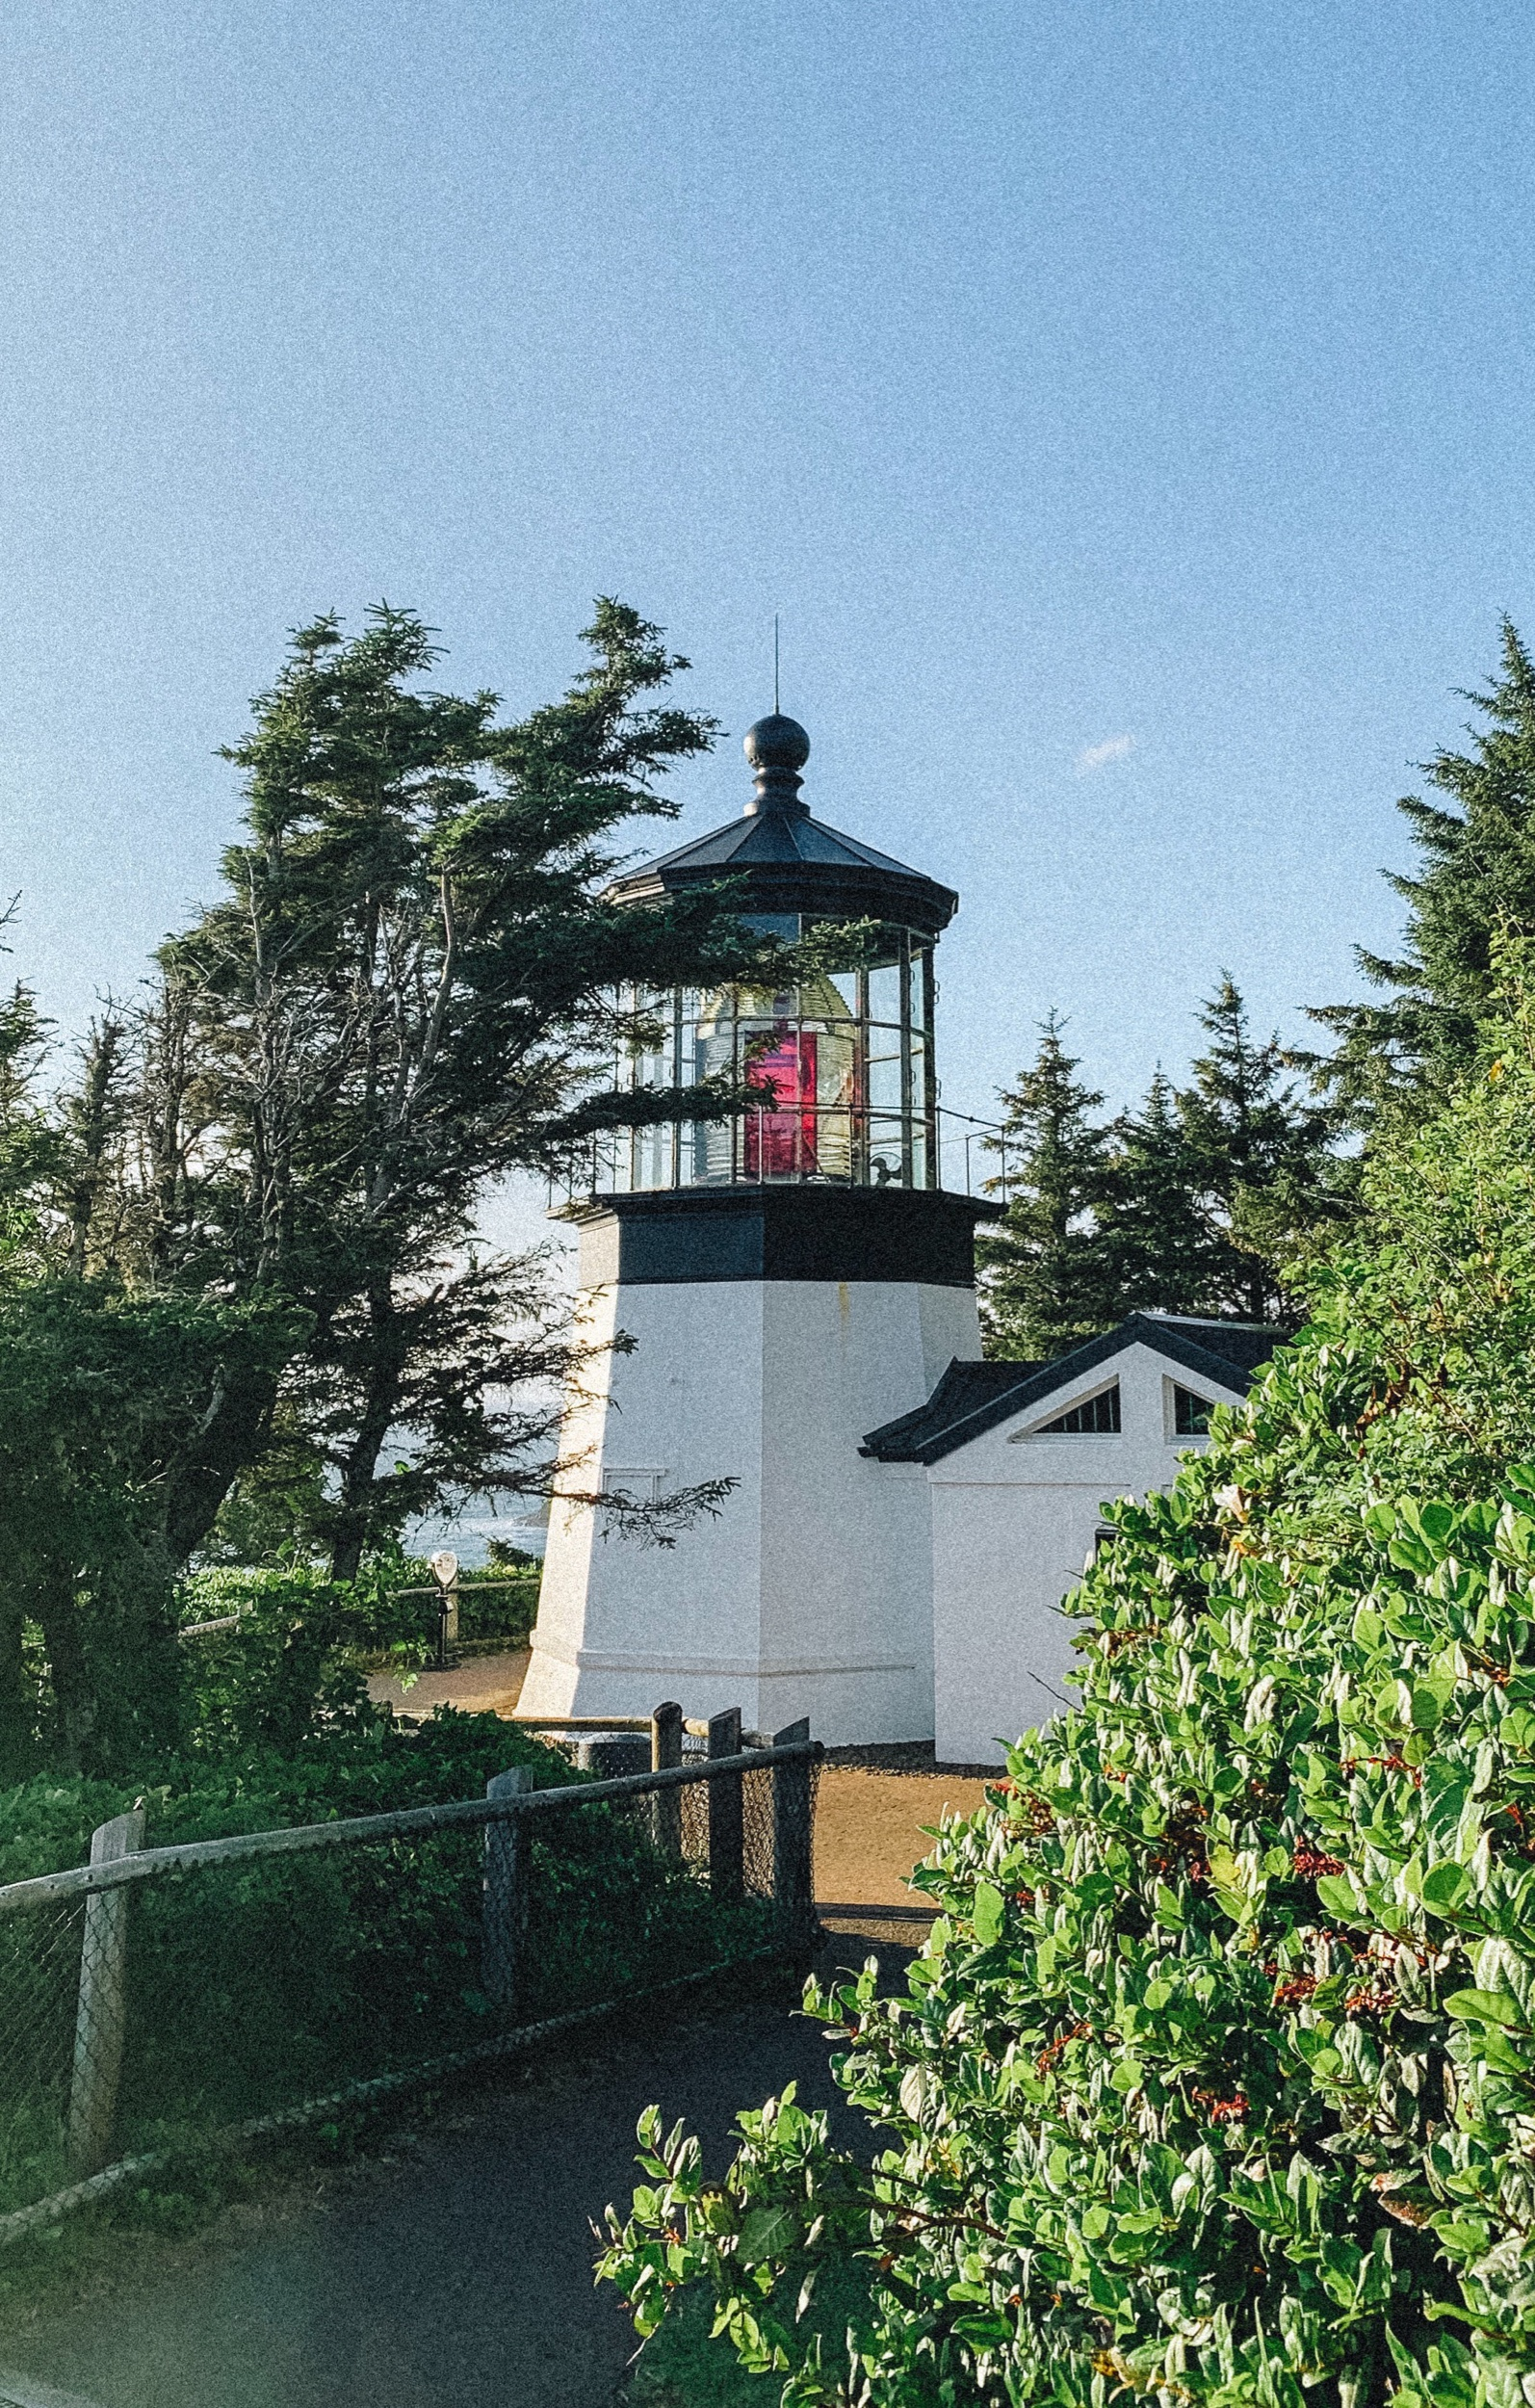 Pictured: Cape Meares Lighthouse